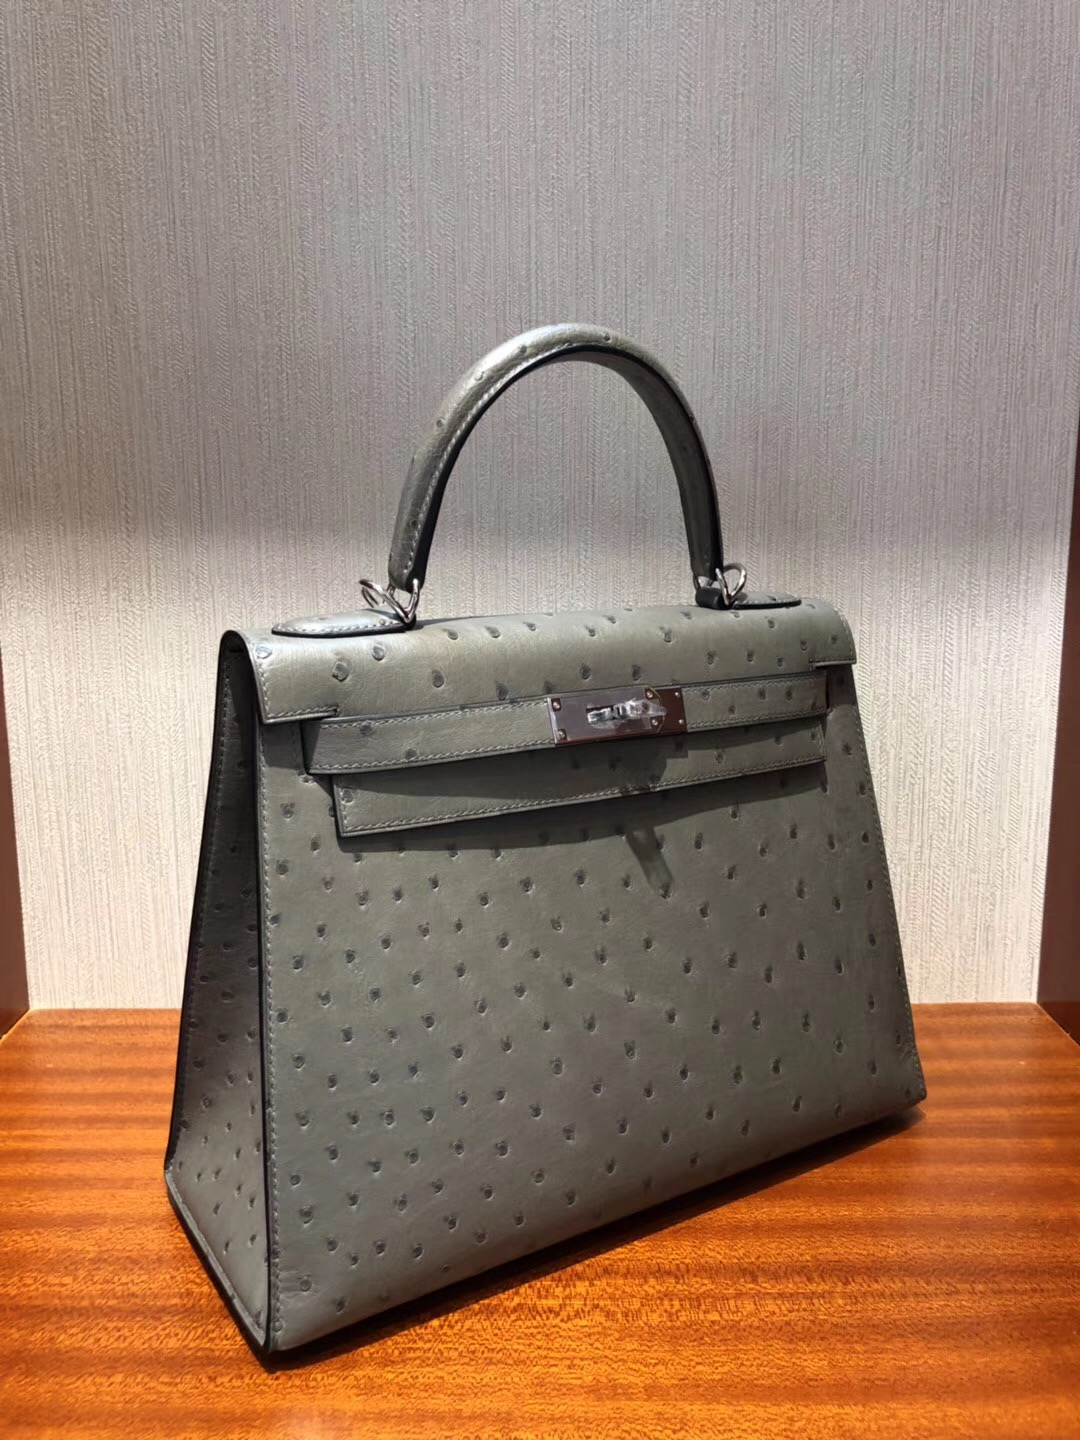 愛馬仕kelly包包價格Hermes Kelly bag 28 8F錫器灰 南非KK鴕鳥皮Ostrich